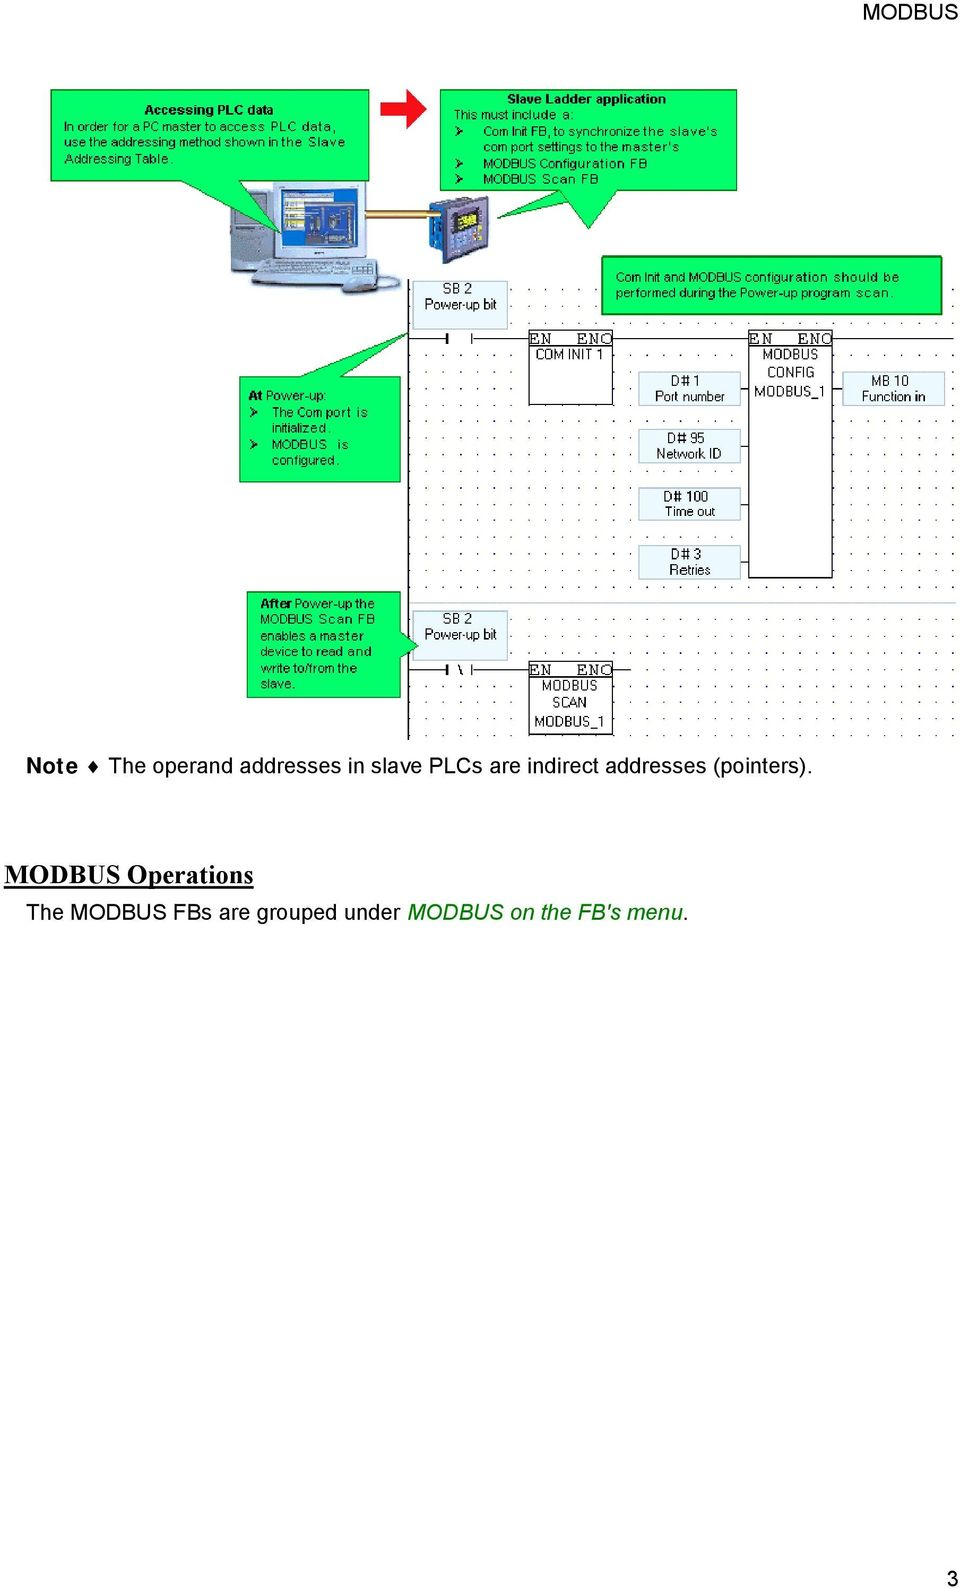 MODBUS  Table Of Contents - PDF